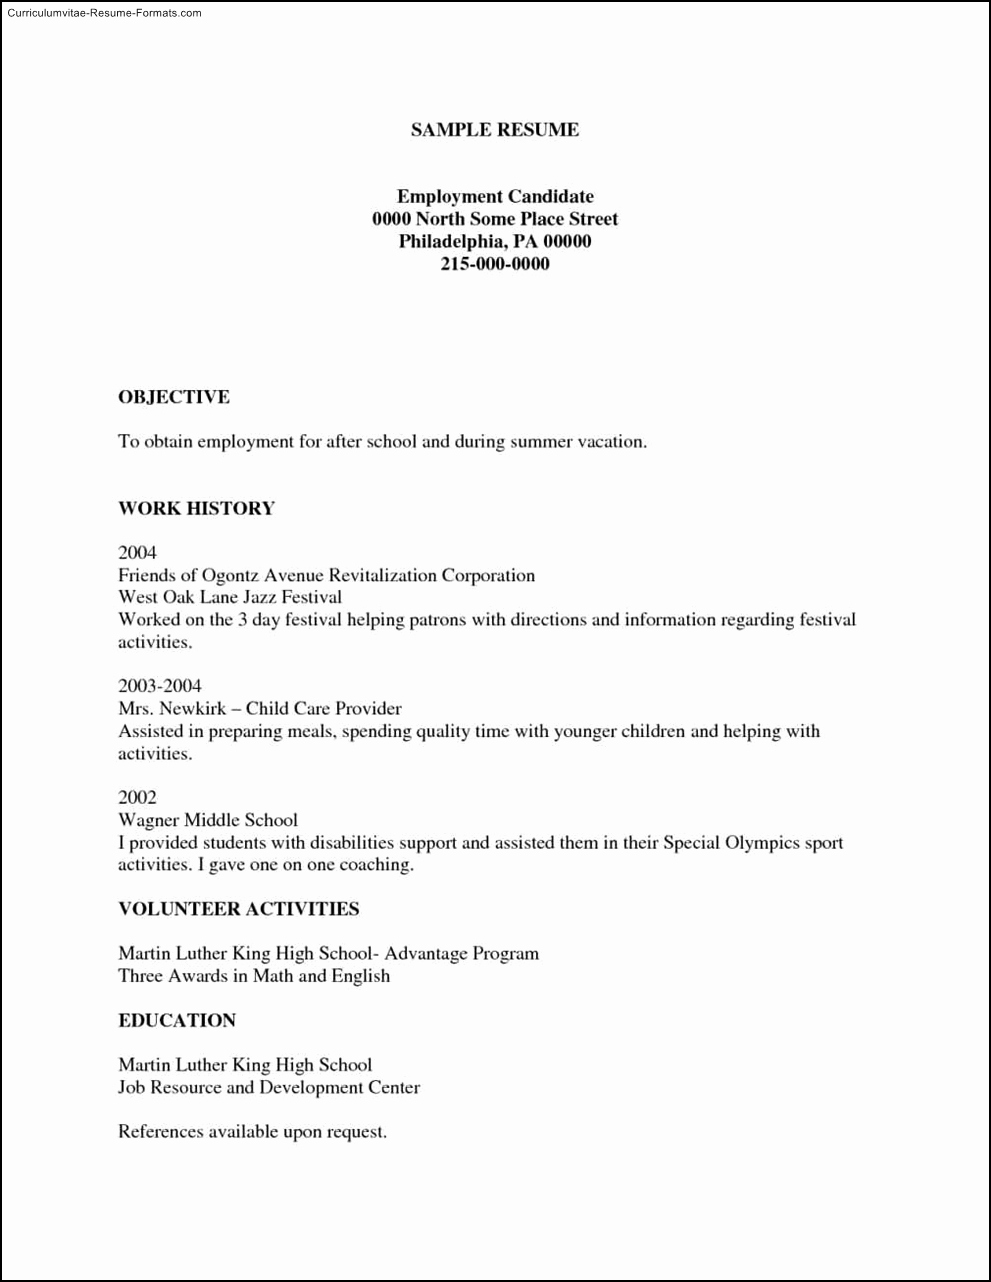 Resume Templates Printable Free For Free Printable Resumes Templates